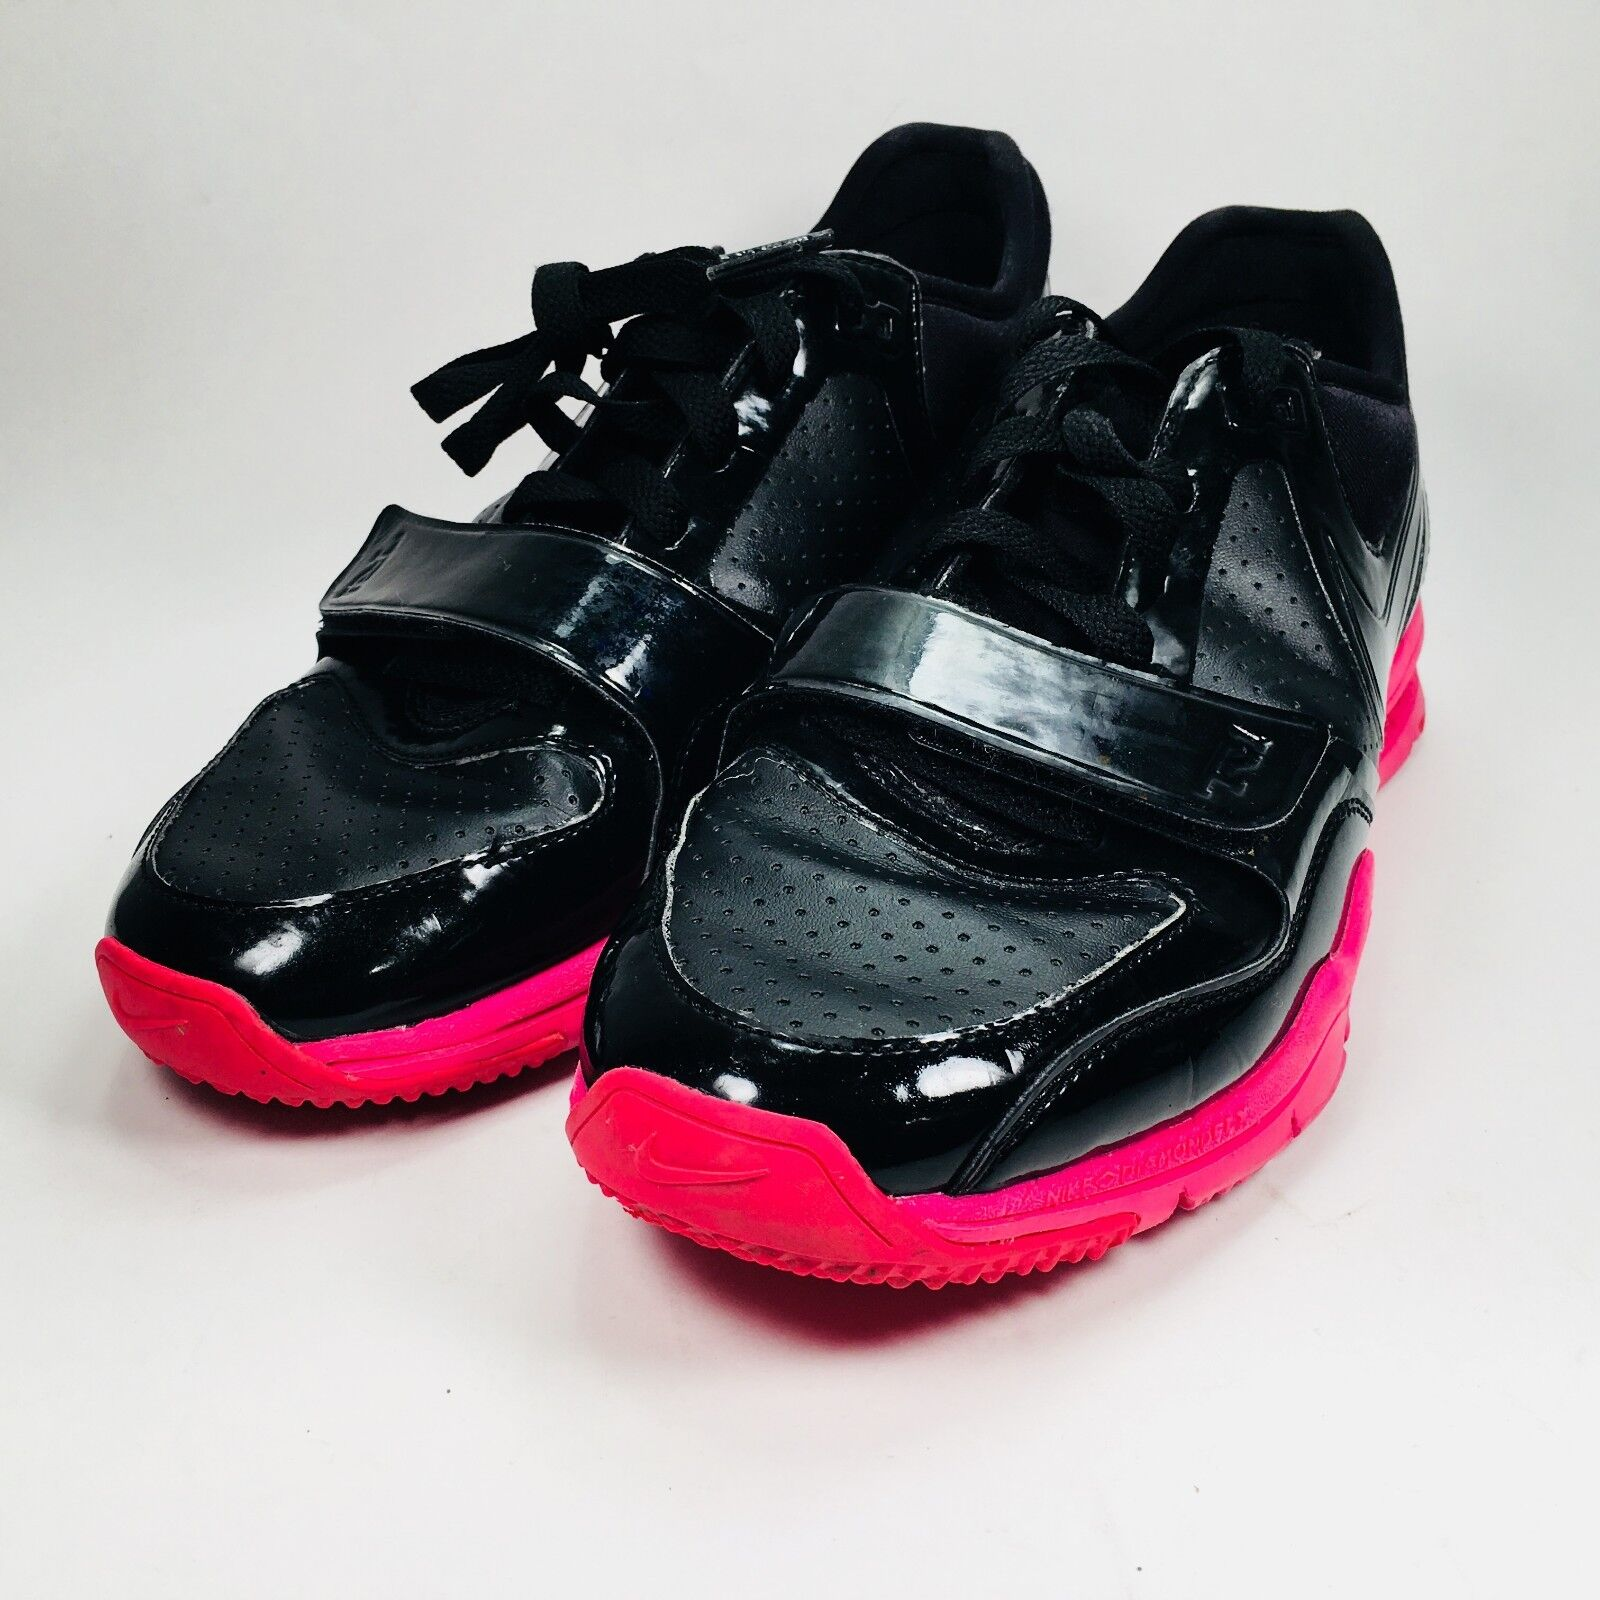 Nike Air Max Attack Trainer 1 10' Sneaker Hip Multi Pink Black Women's Size 7